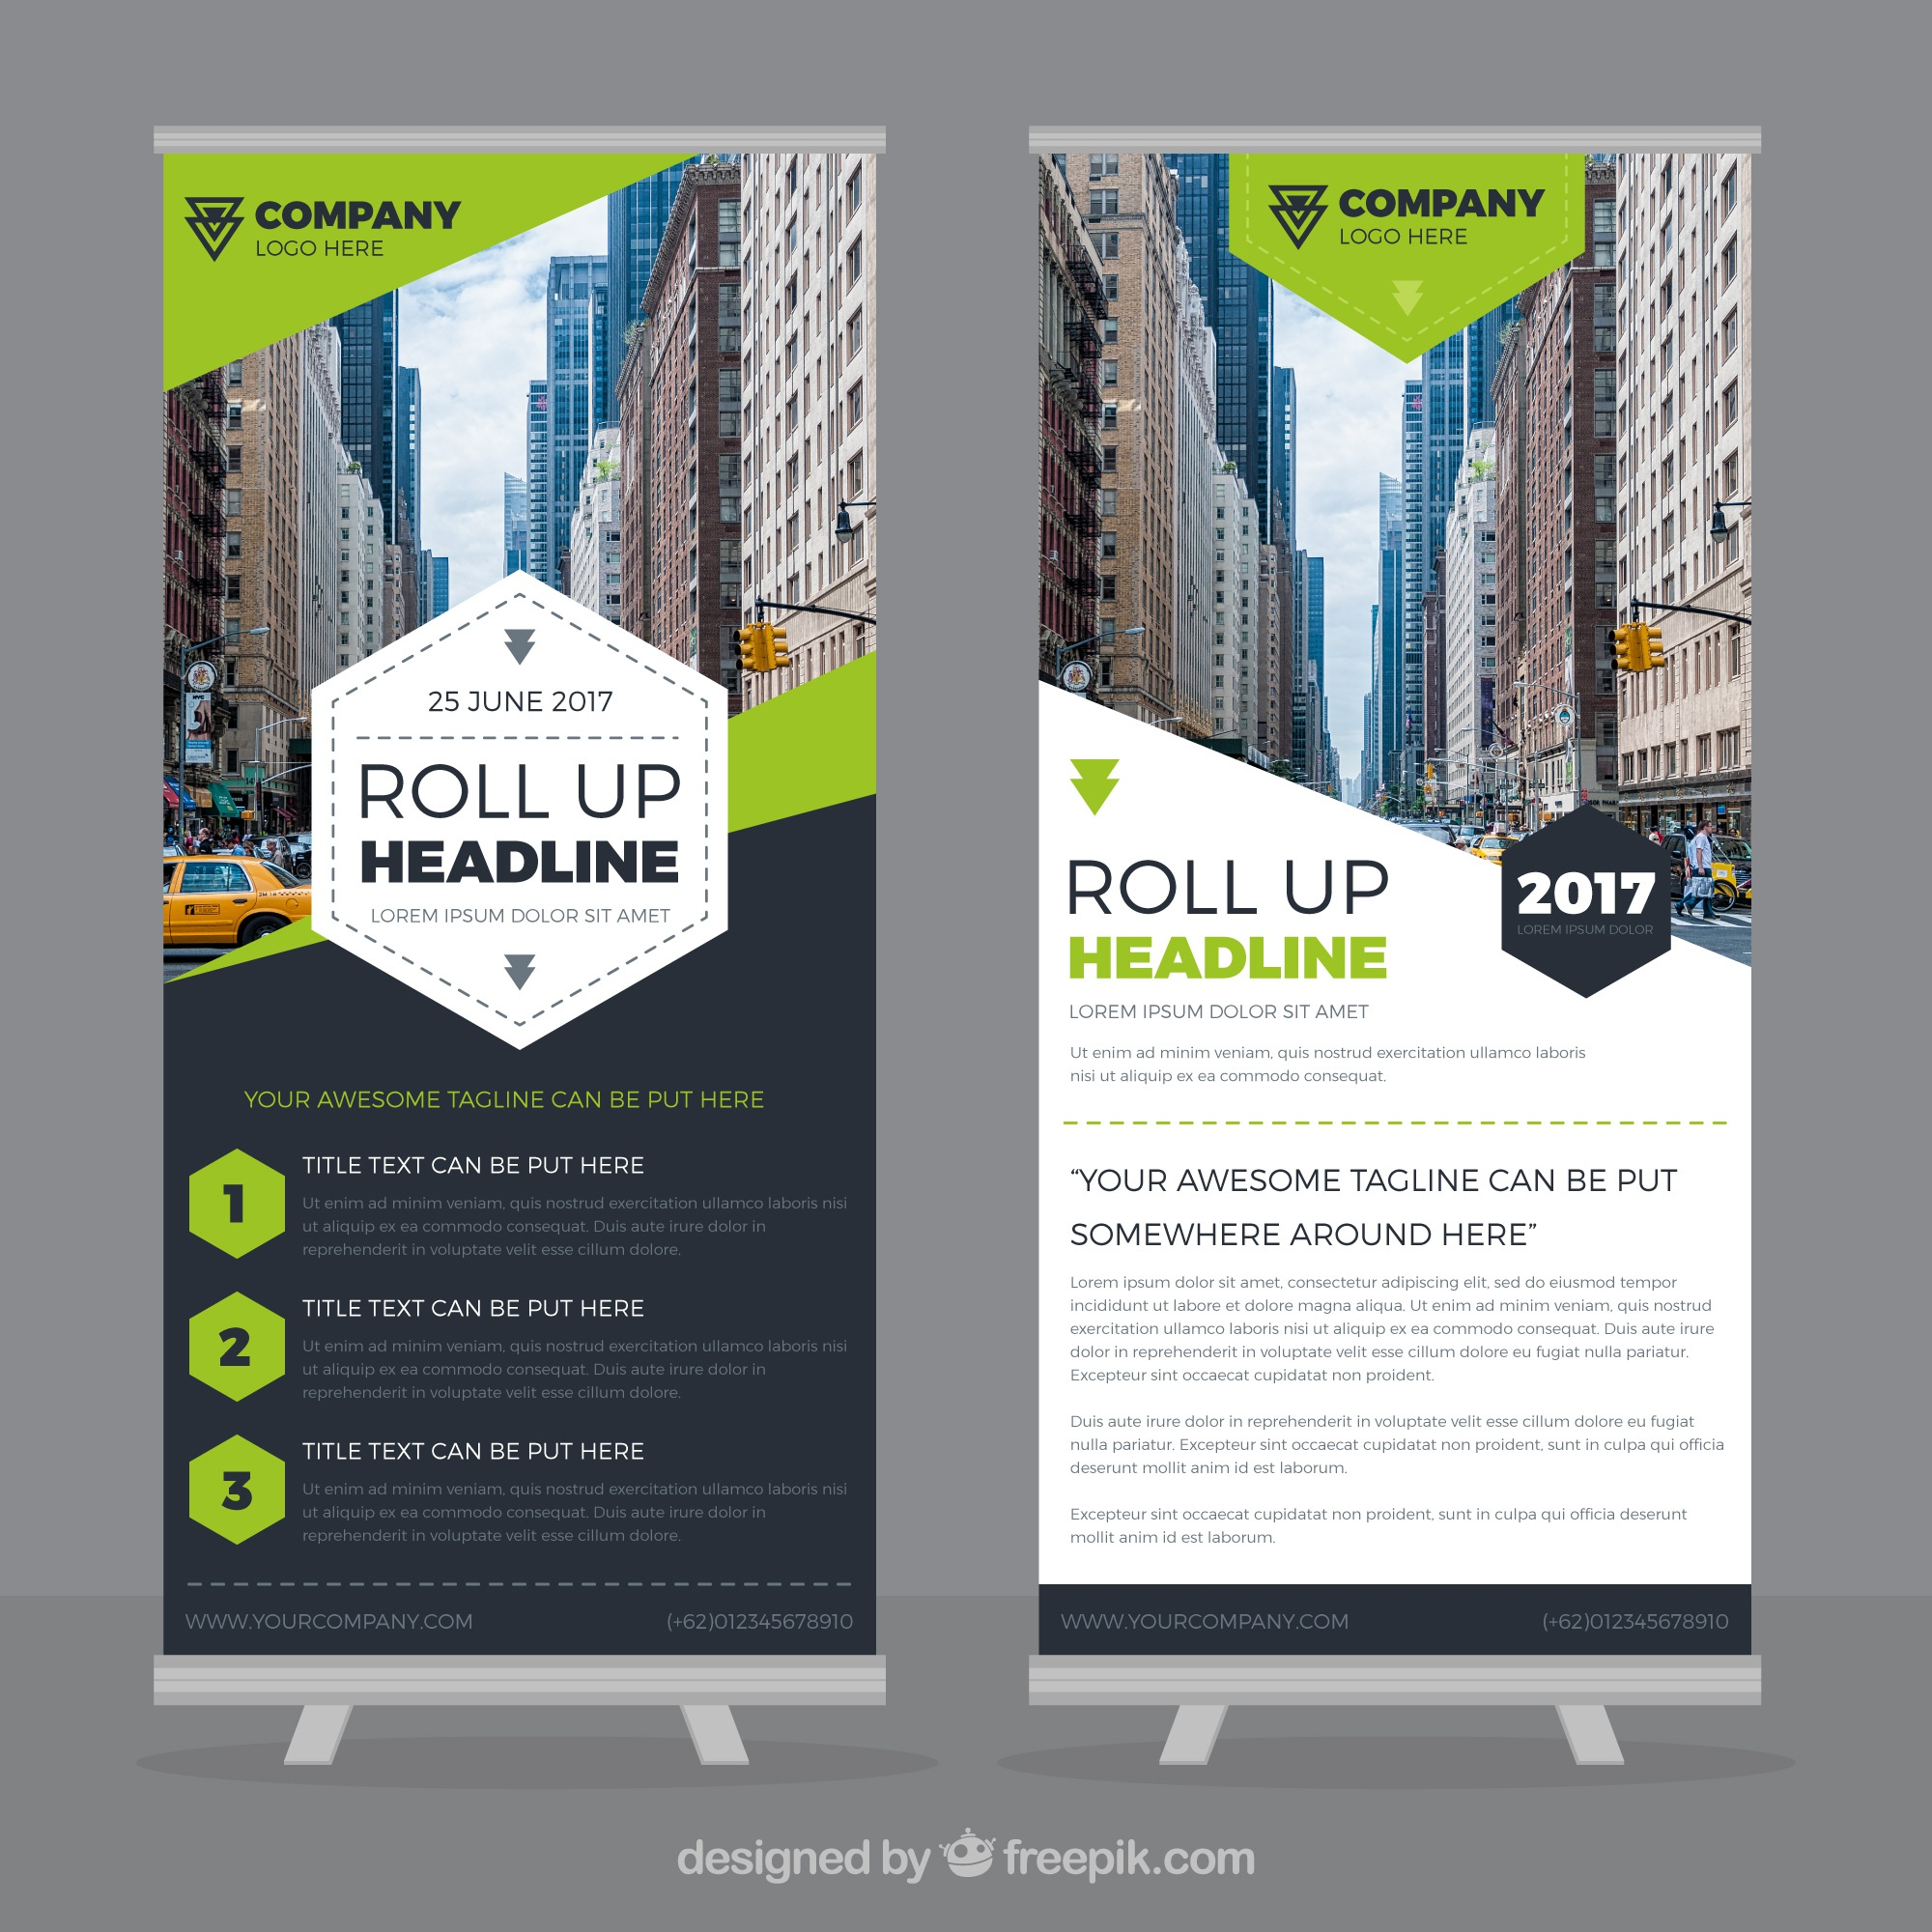 Template of great roll up with green forms